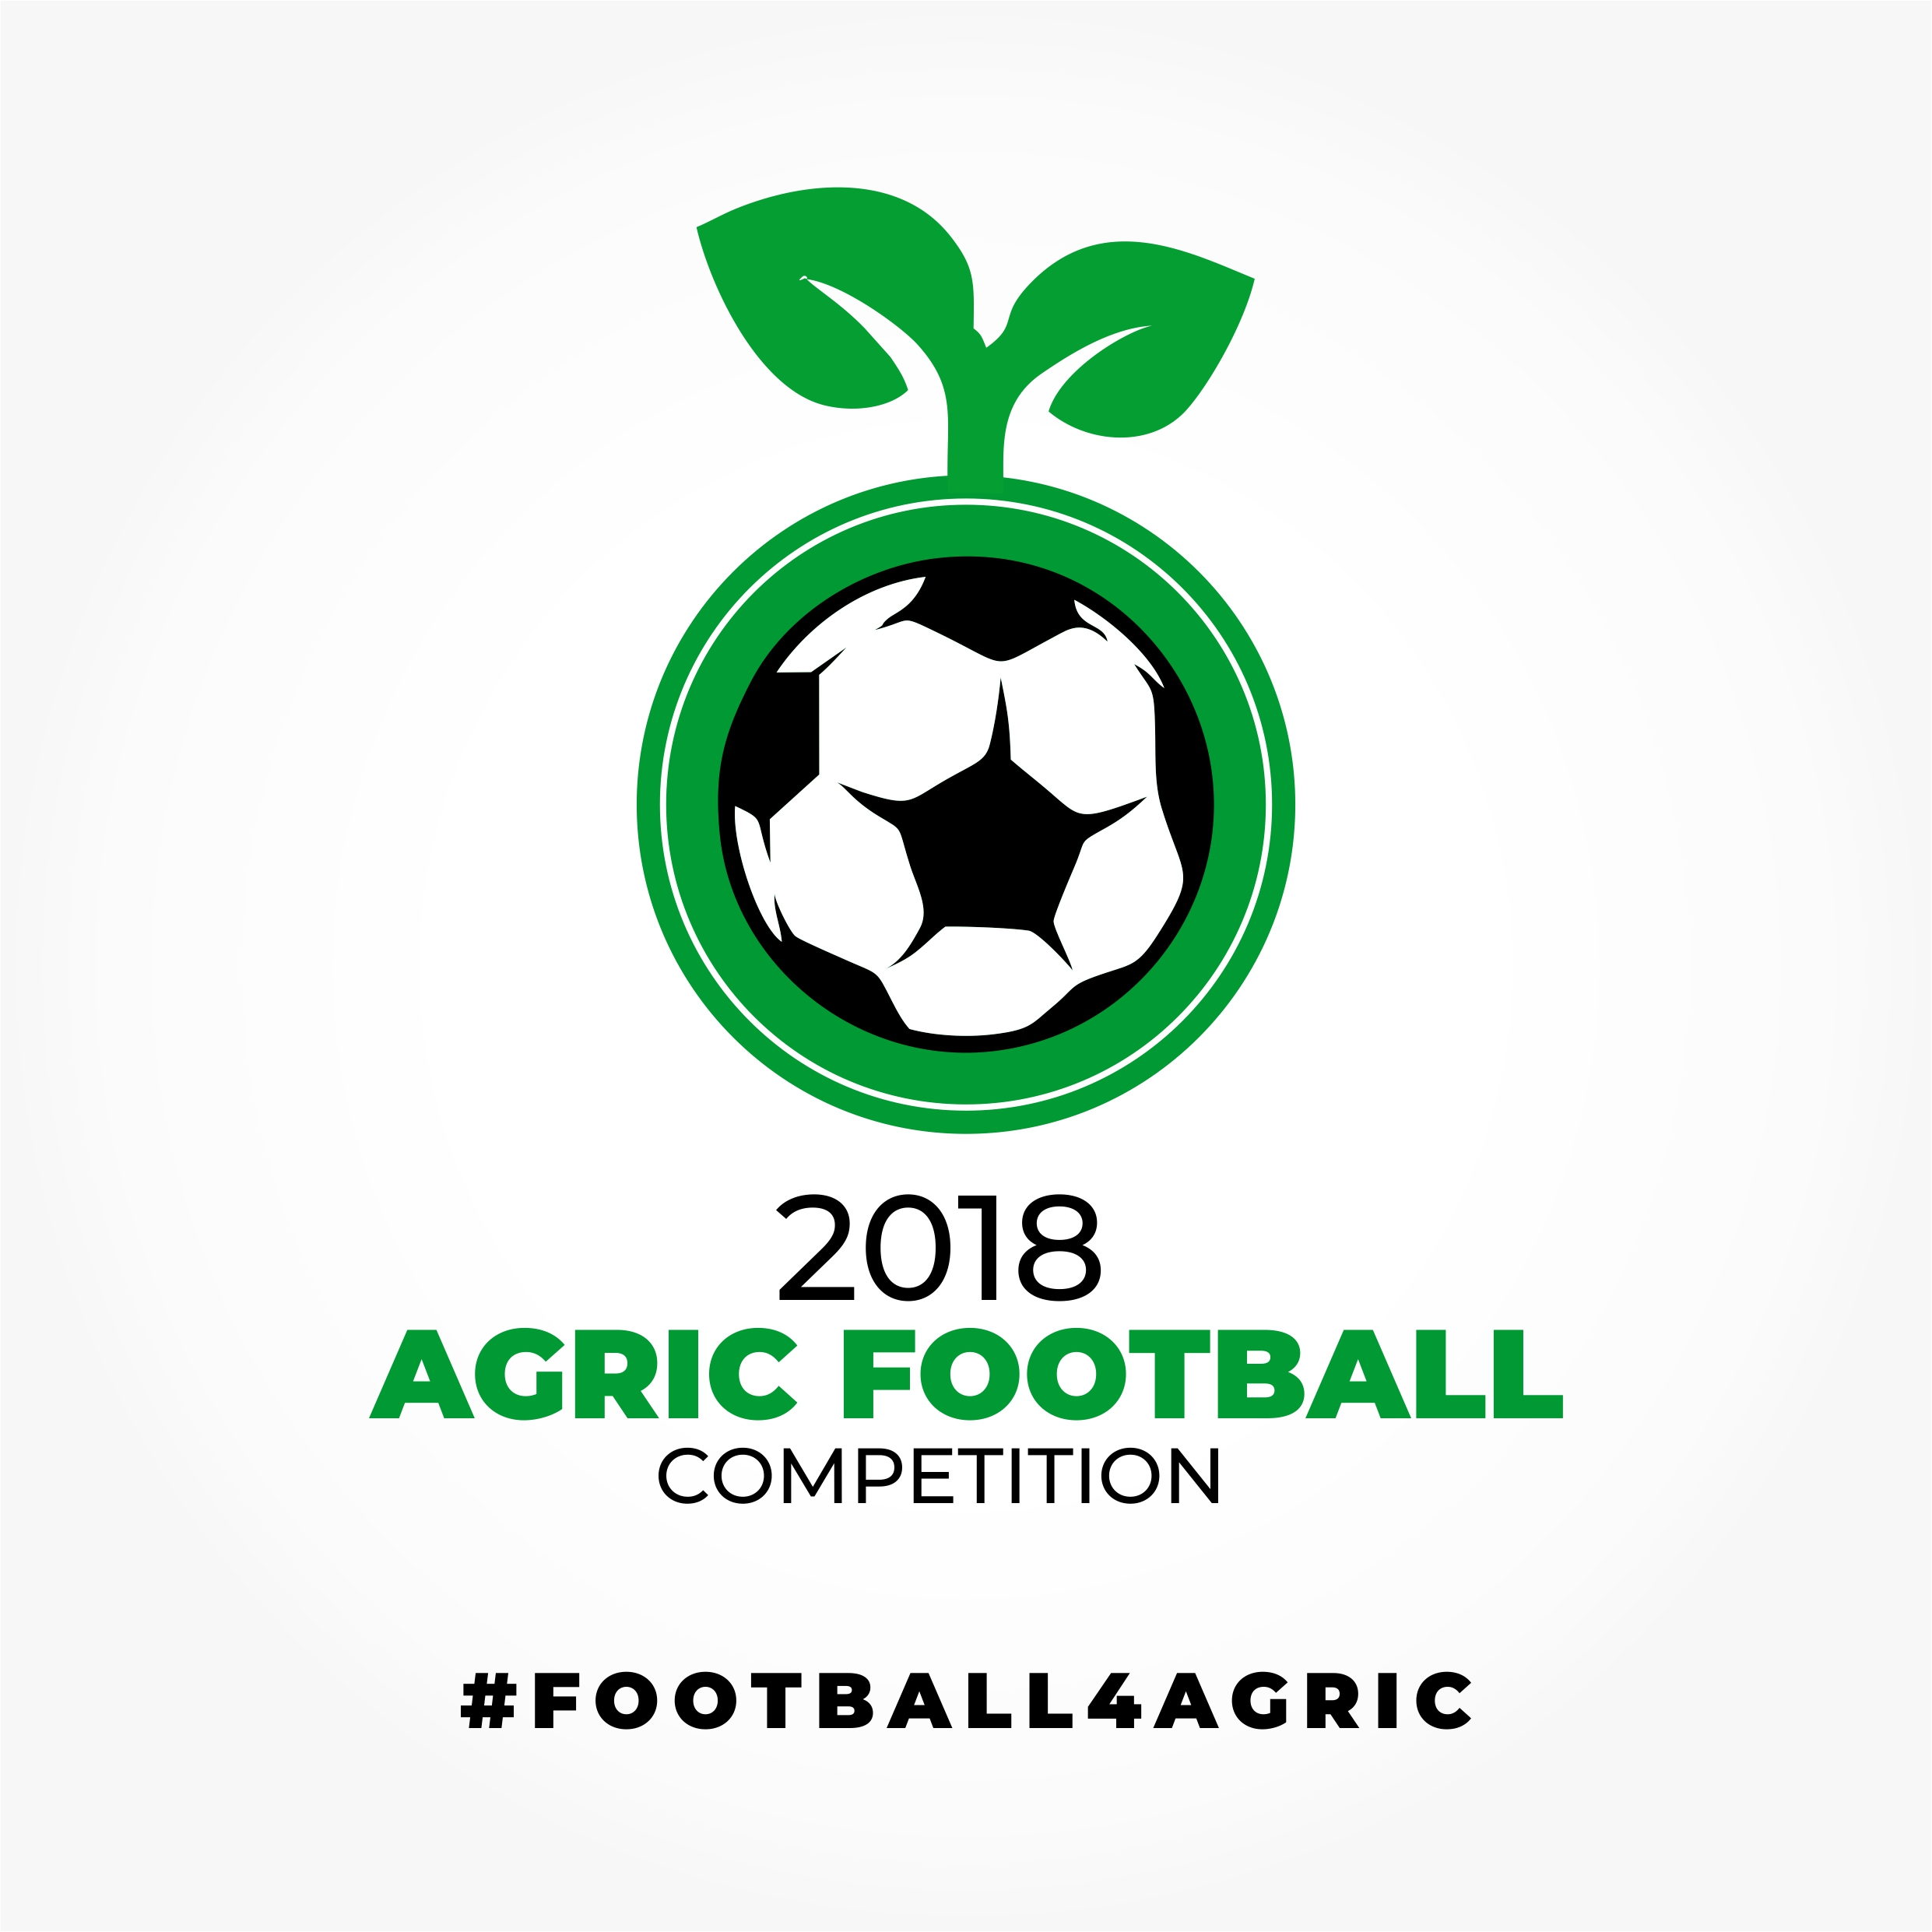 2018 Agric Football Competition